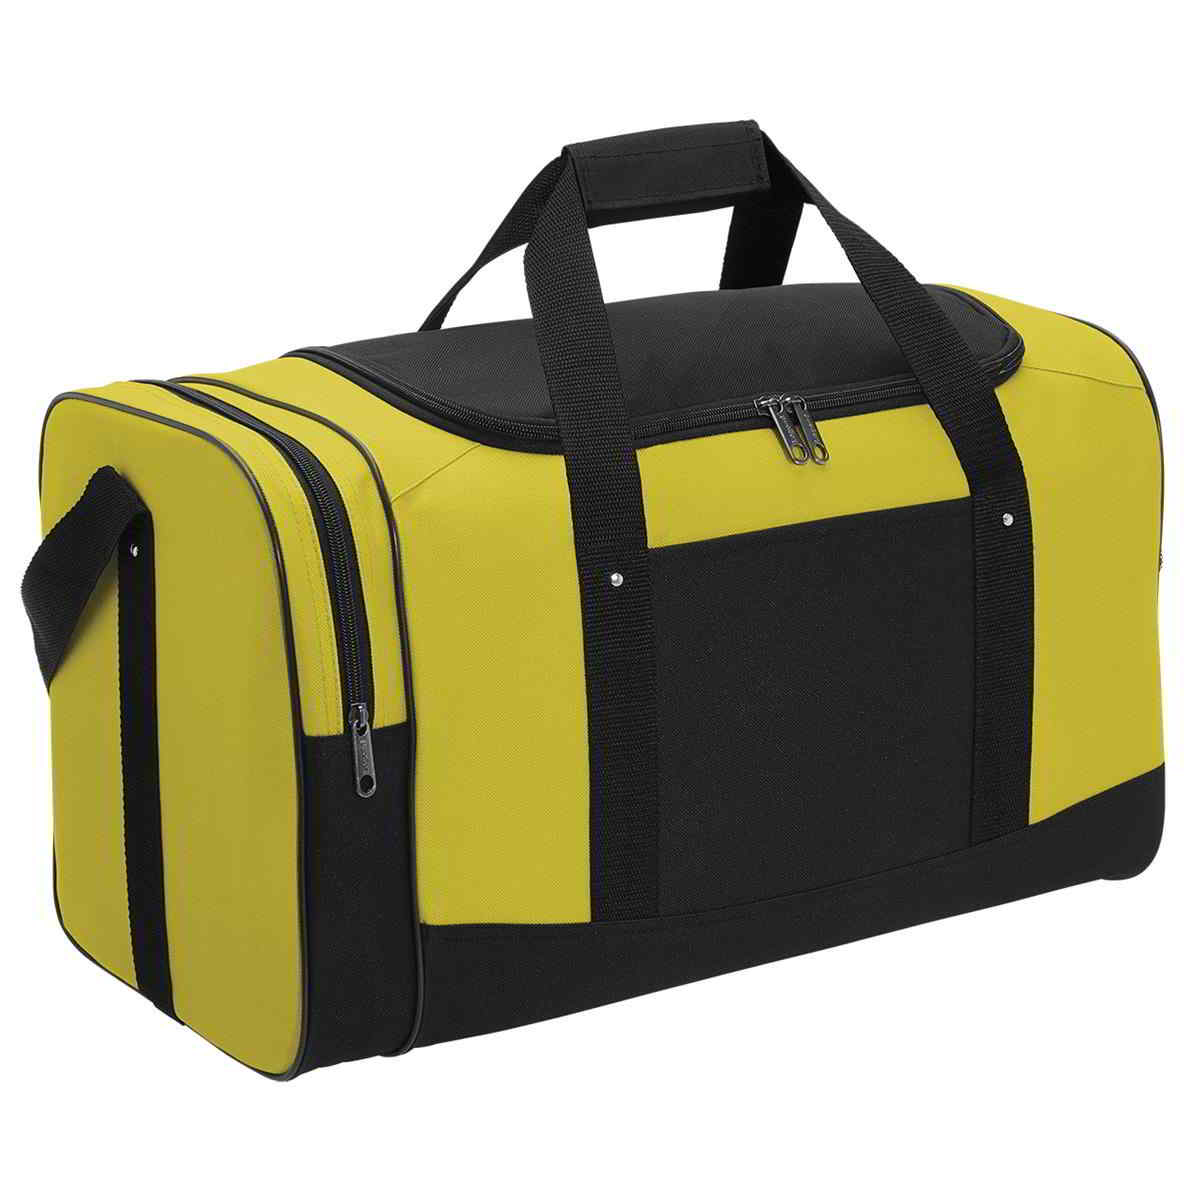 1222 Spark Sports Bag YELLOW / Black